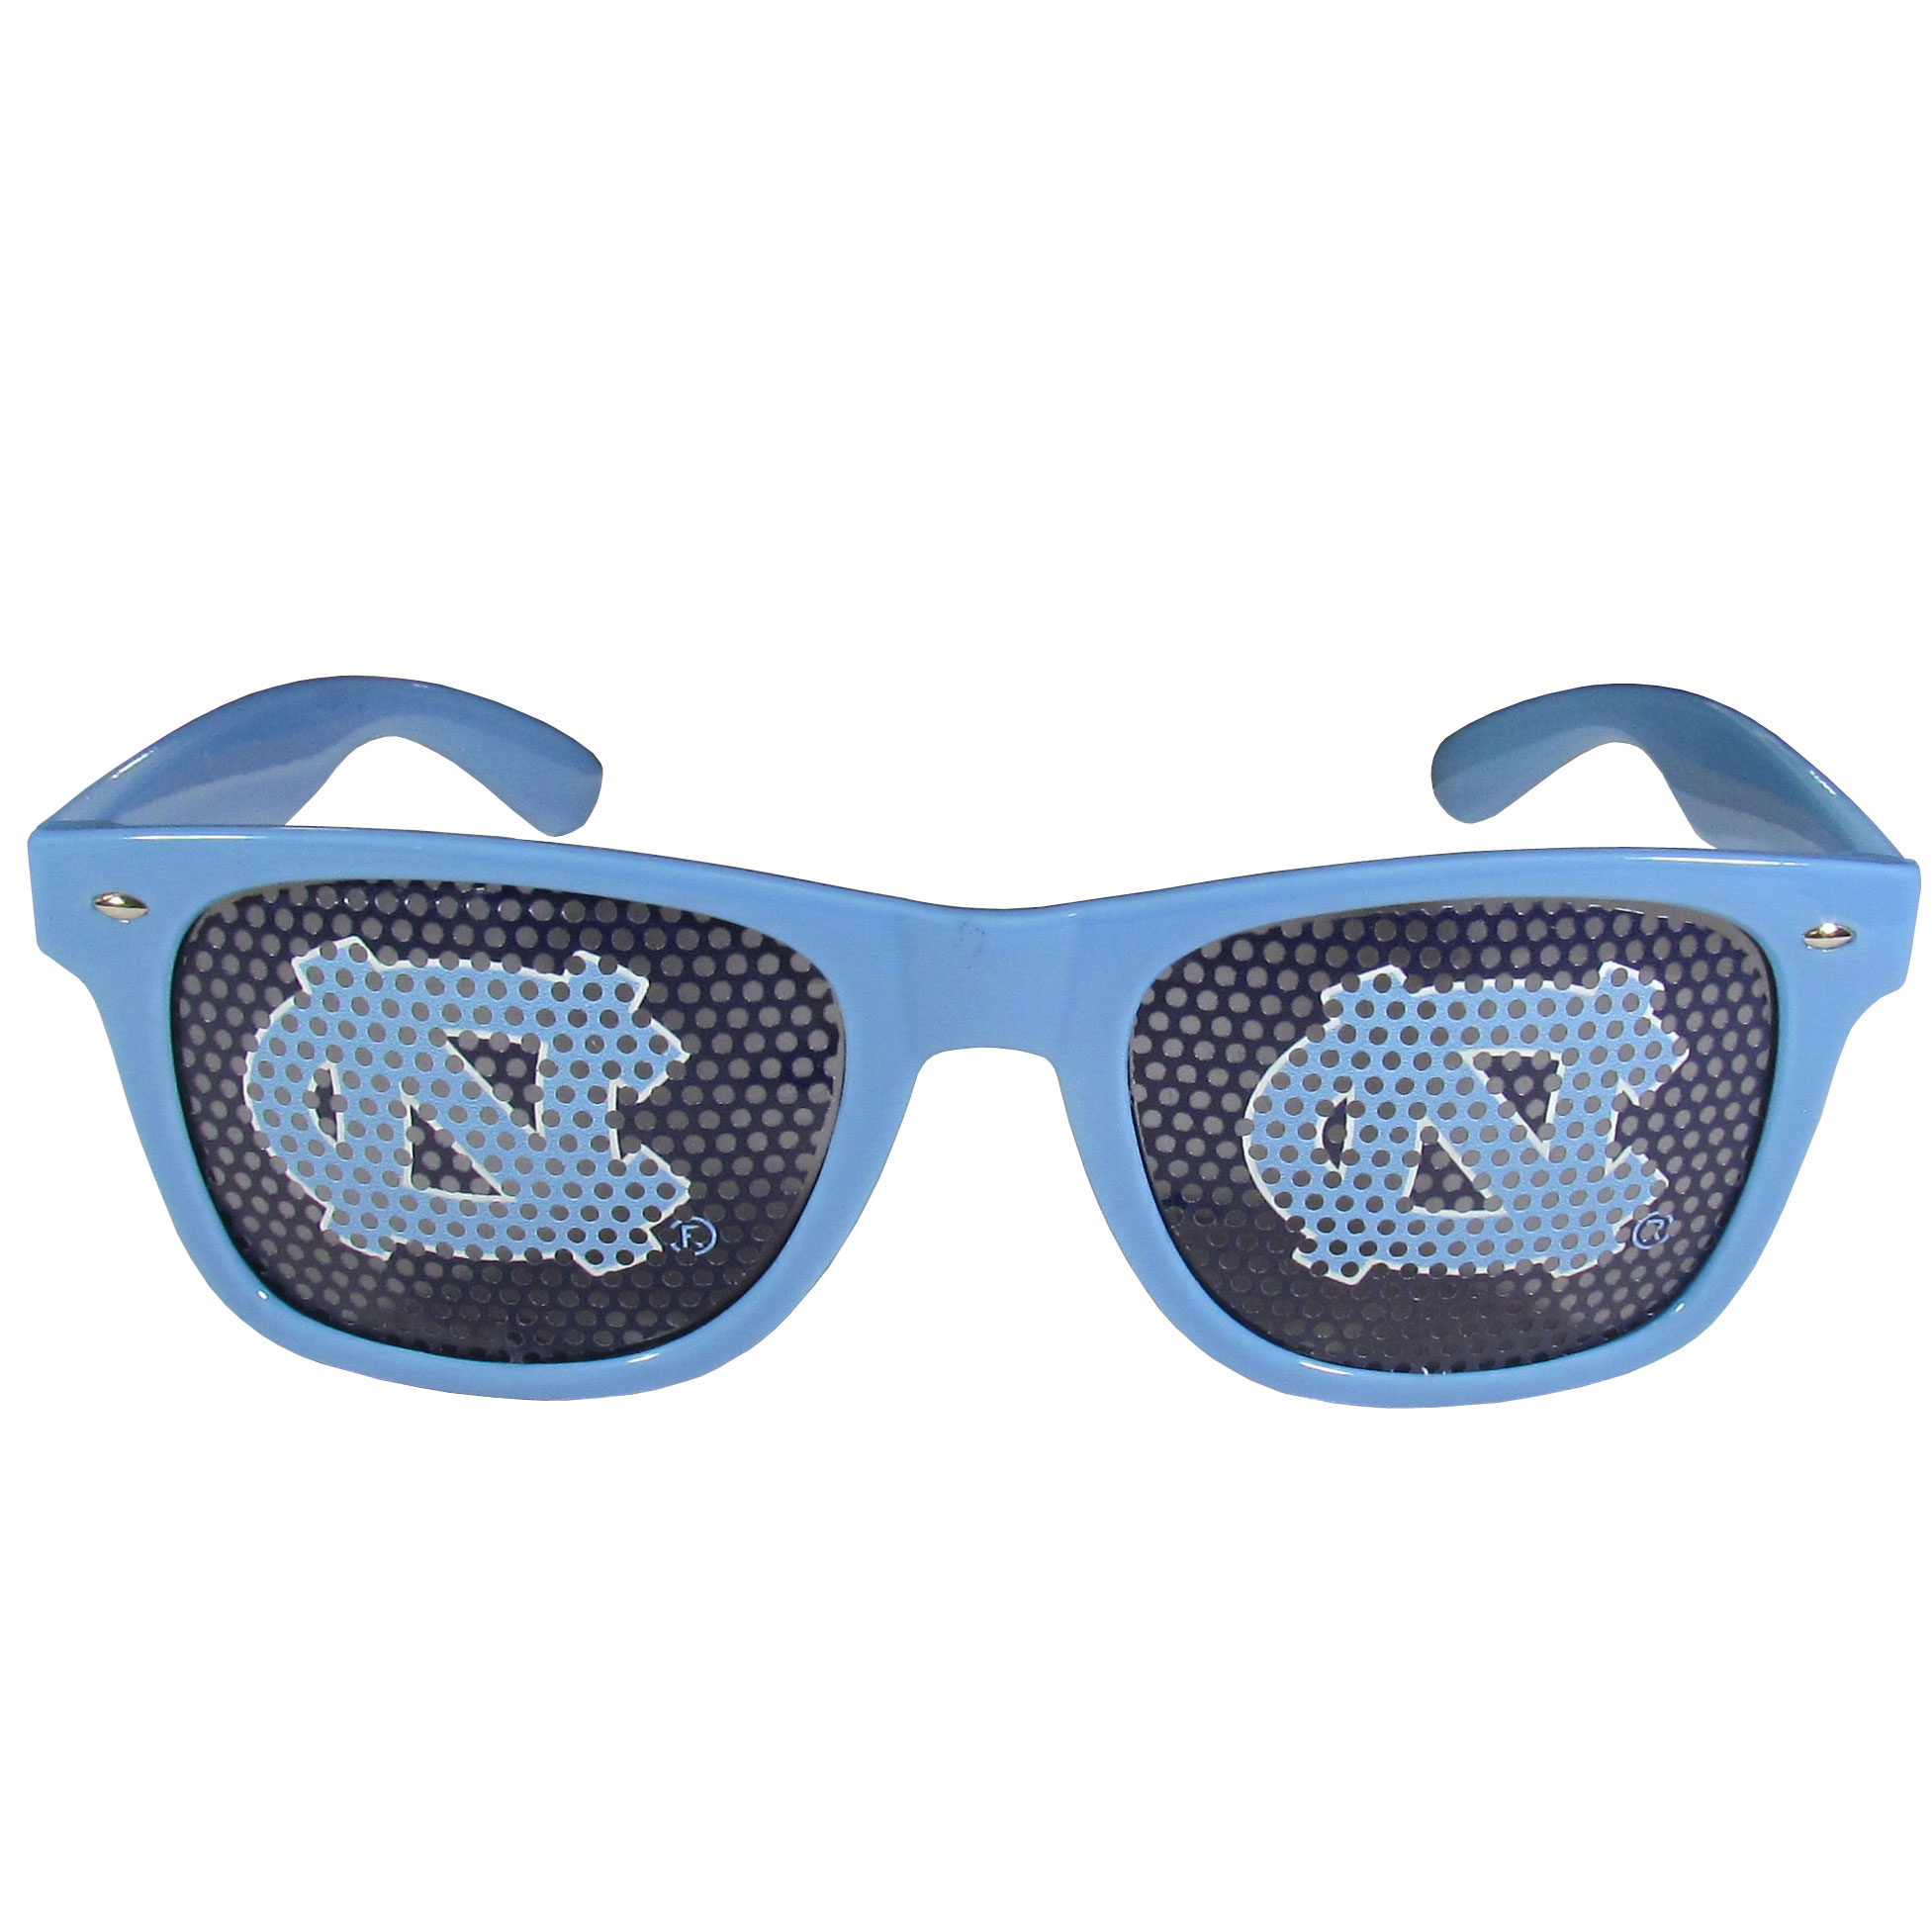 N. Carolina Tar Heels Game Day Shades - Our officially licensed game day shades are the perfect accessory for the devoted N. Carolina Tar Heels fan! The sunglasses have durable polycarbonate frames with flex hinges for comfort and damage resistance. The lenses feature brightly colored team clings that are perforated for visibility.